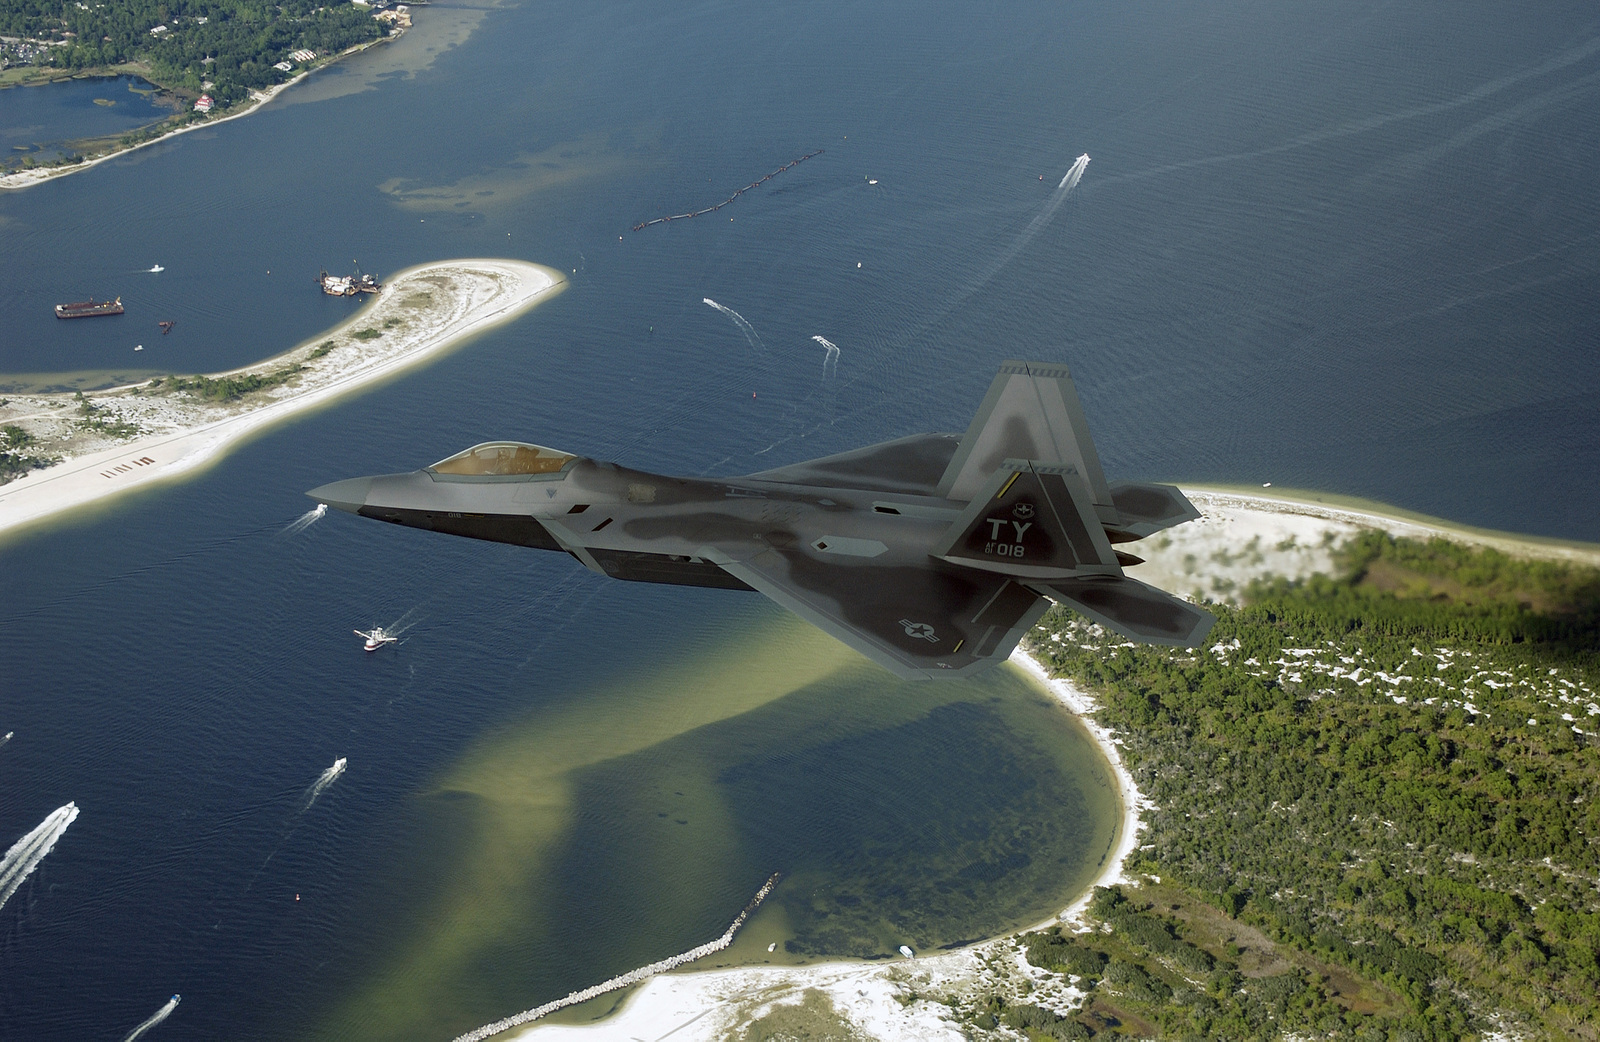 """US Air Force (USAF) Lieutenant Colonel (LTC) Jeffrey """"Cobra"""" Harrigian, Commander, 43rd Fighter Squadron (FS), 325th Fighter Wing (FW), Air Education and Training Command (AETC), Tyndall Air Force Base (AFB), Florida (FL), flies Raptor 01-018, over the Florida (FL) coast line. This is the first of 48 new USAF F/A-22 Raptors assigned to Tyndall's 325th FW. The flight, took place September 26, 2003, is a major milestone and will now enable the 43rd FS to begin formally training pilots to fly this next-generation fighter. The F/A-22 combines stealth, supercruise, maneuverability and many other features enabling a first look, first shot, first kill capability that will provide continued air..."""